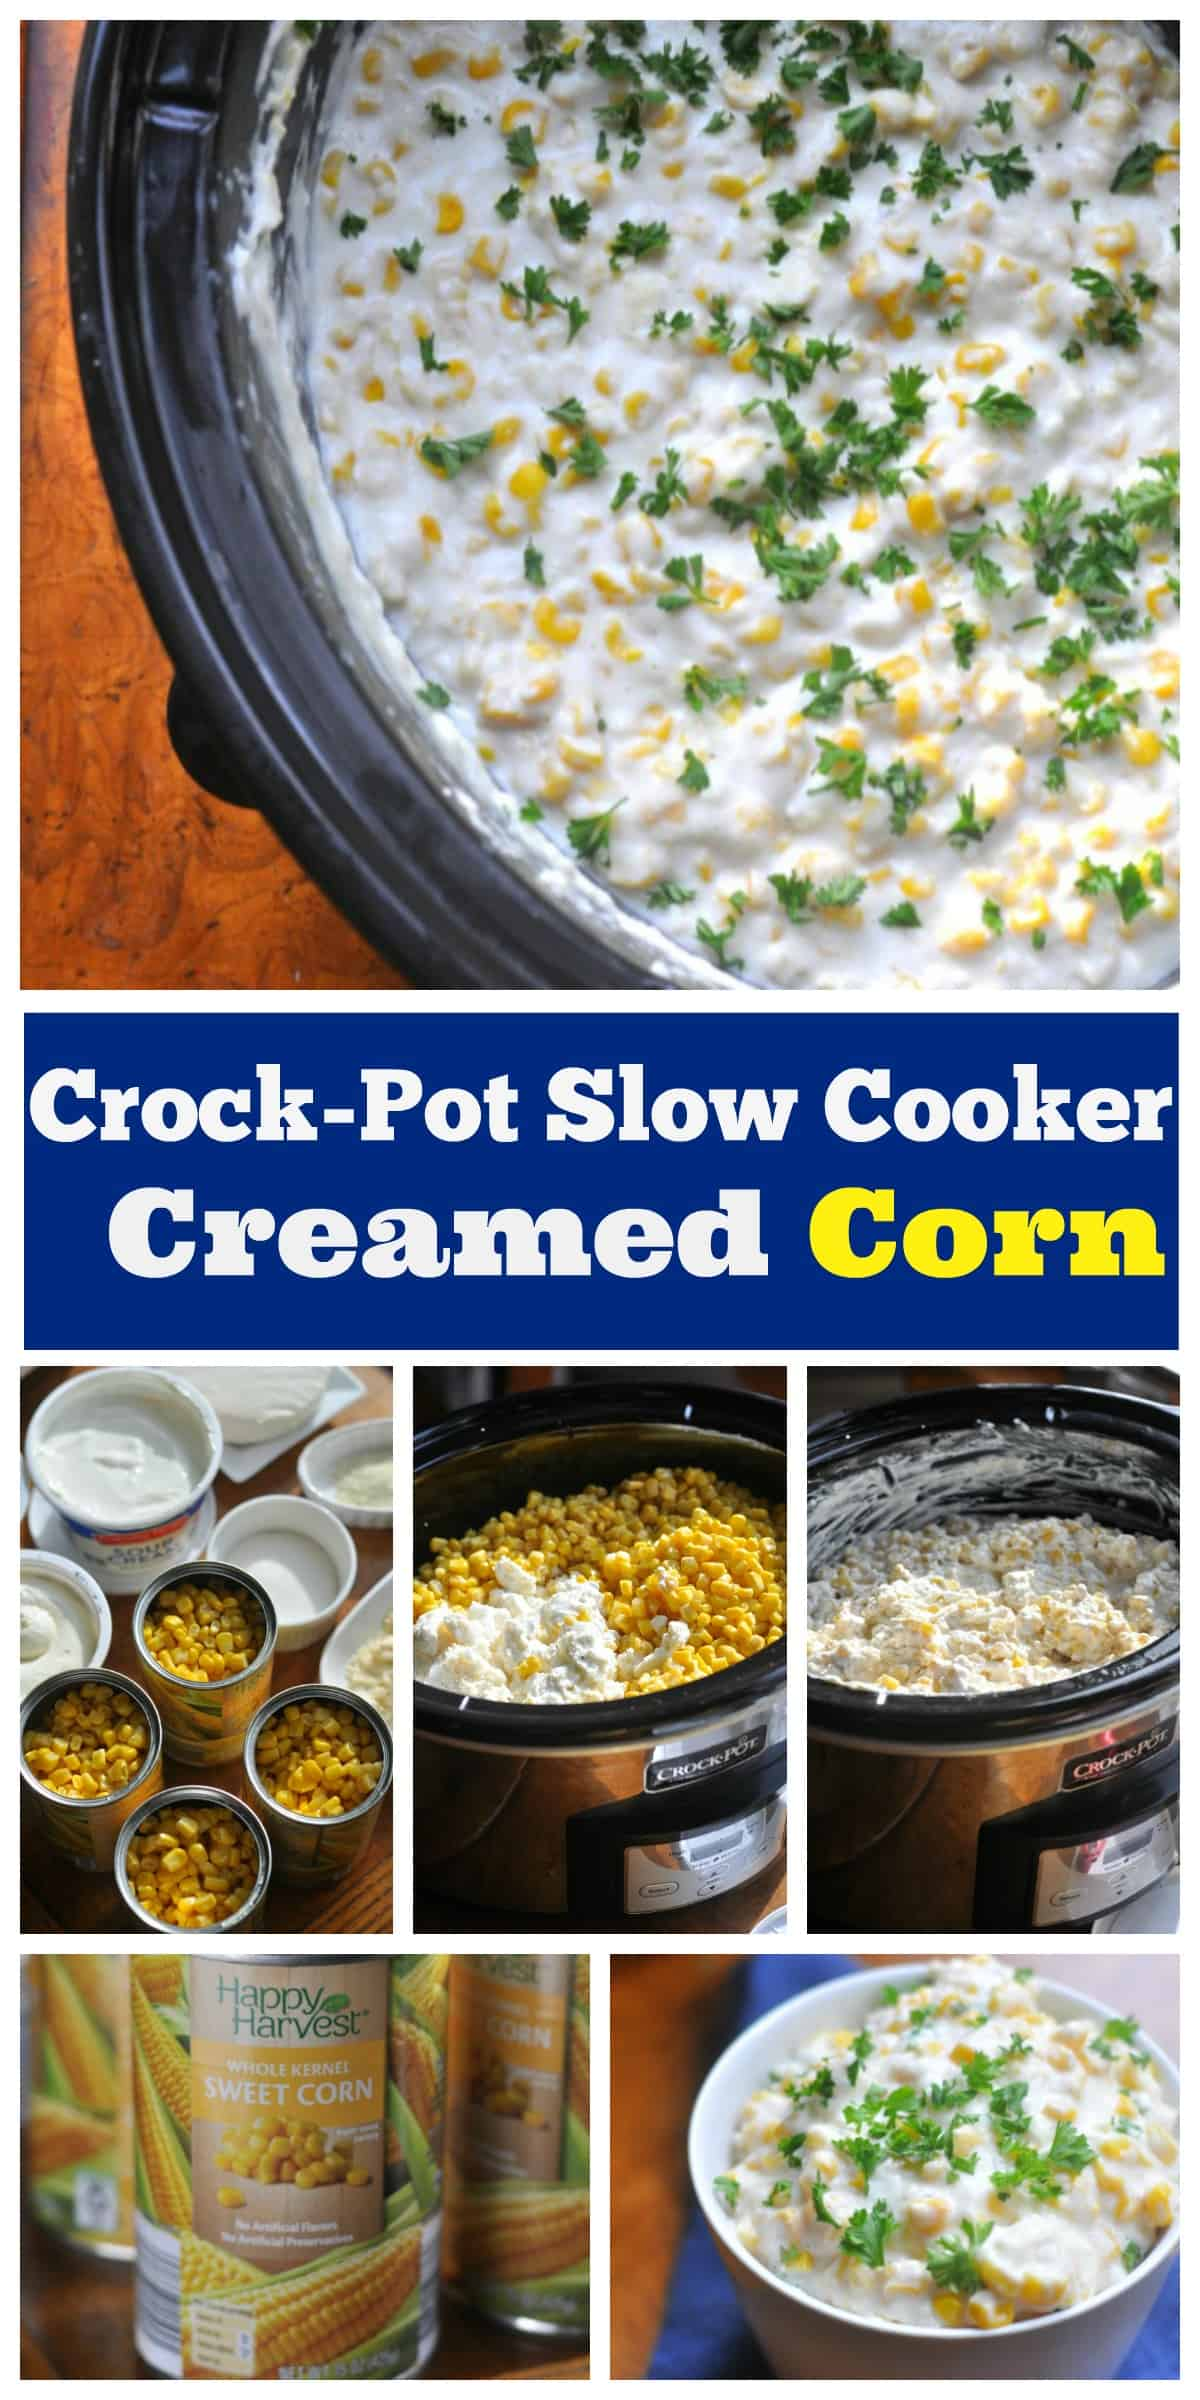 crock pot slow cooker instructions